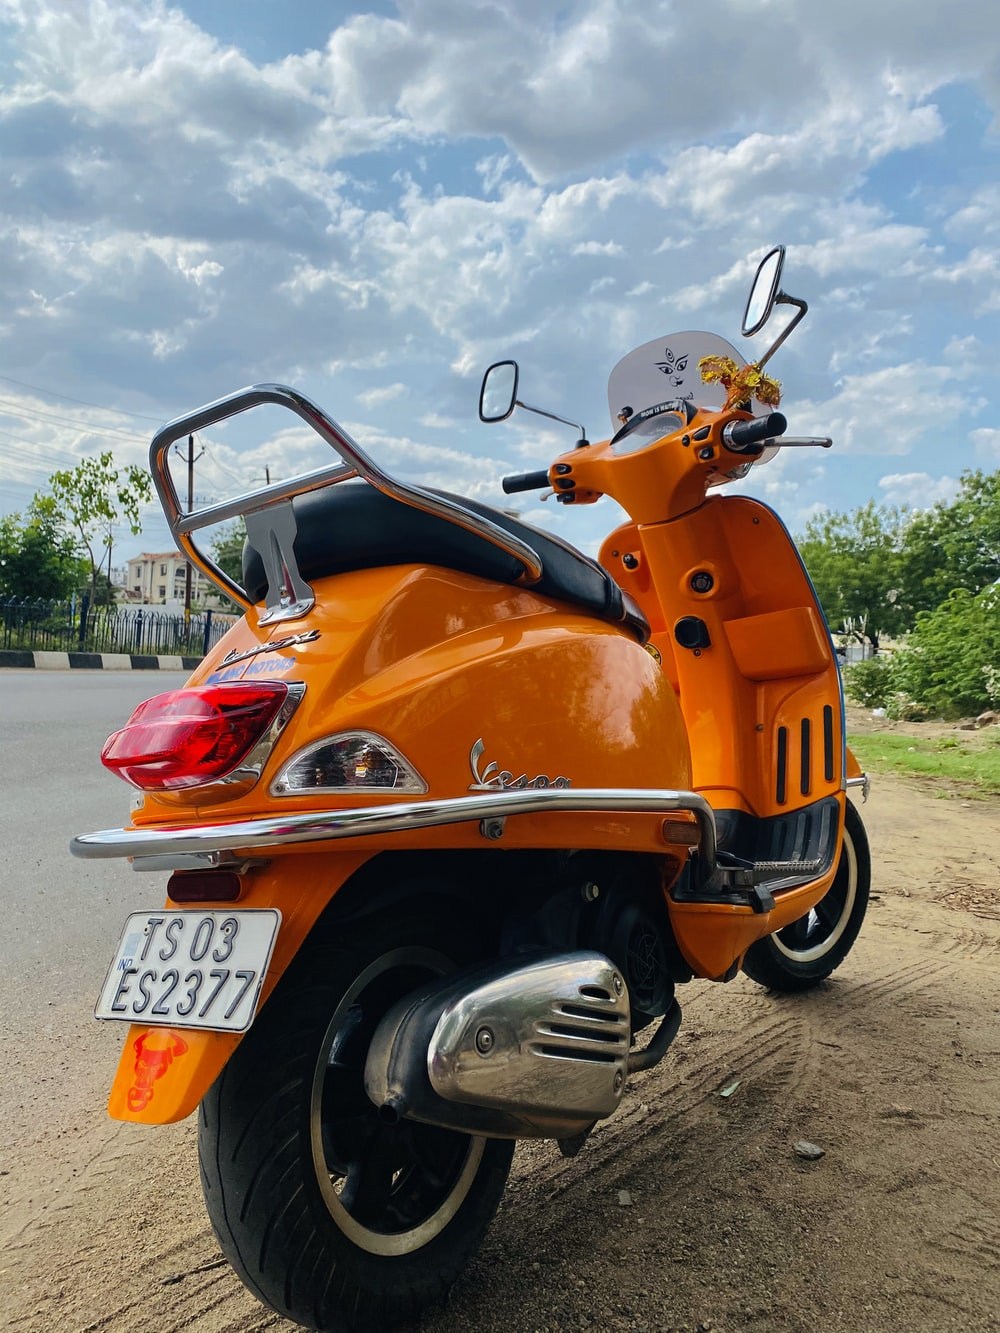 orange and black motor scooter parked on gray concrete pavement during daytime